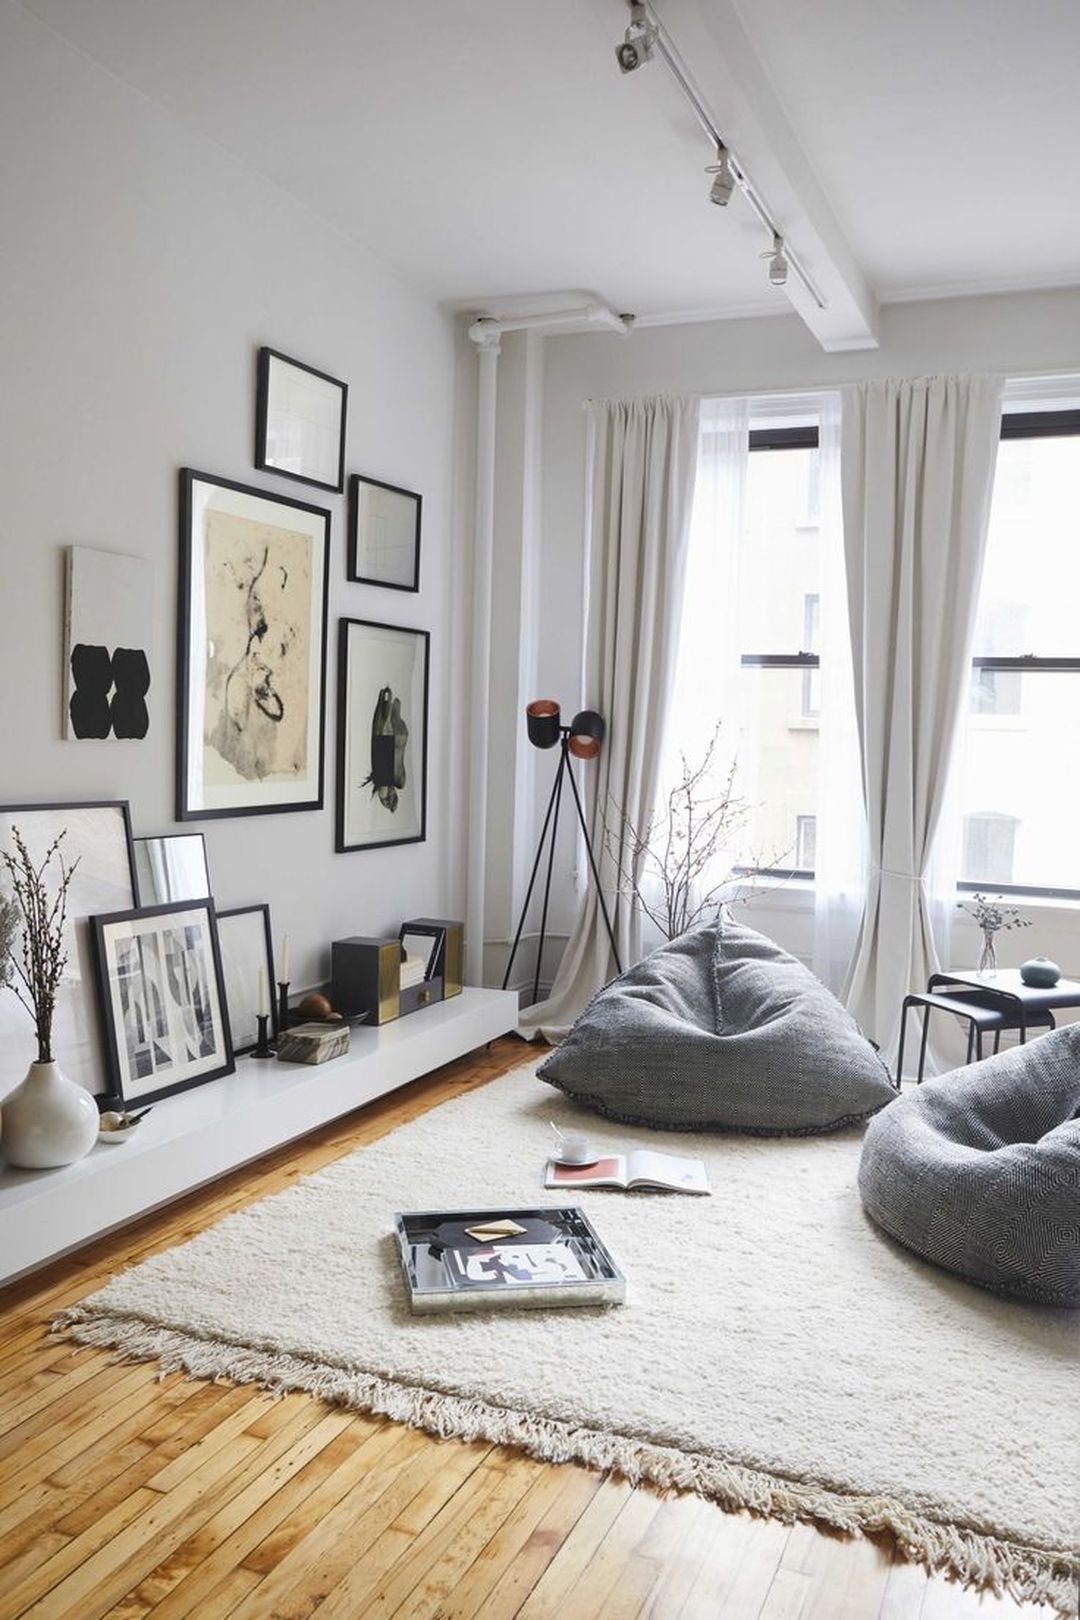 32 Apartment Aesthetic Decor On A Budget | Apartments, Budgeting and ...